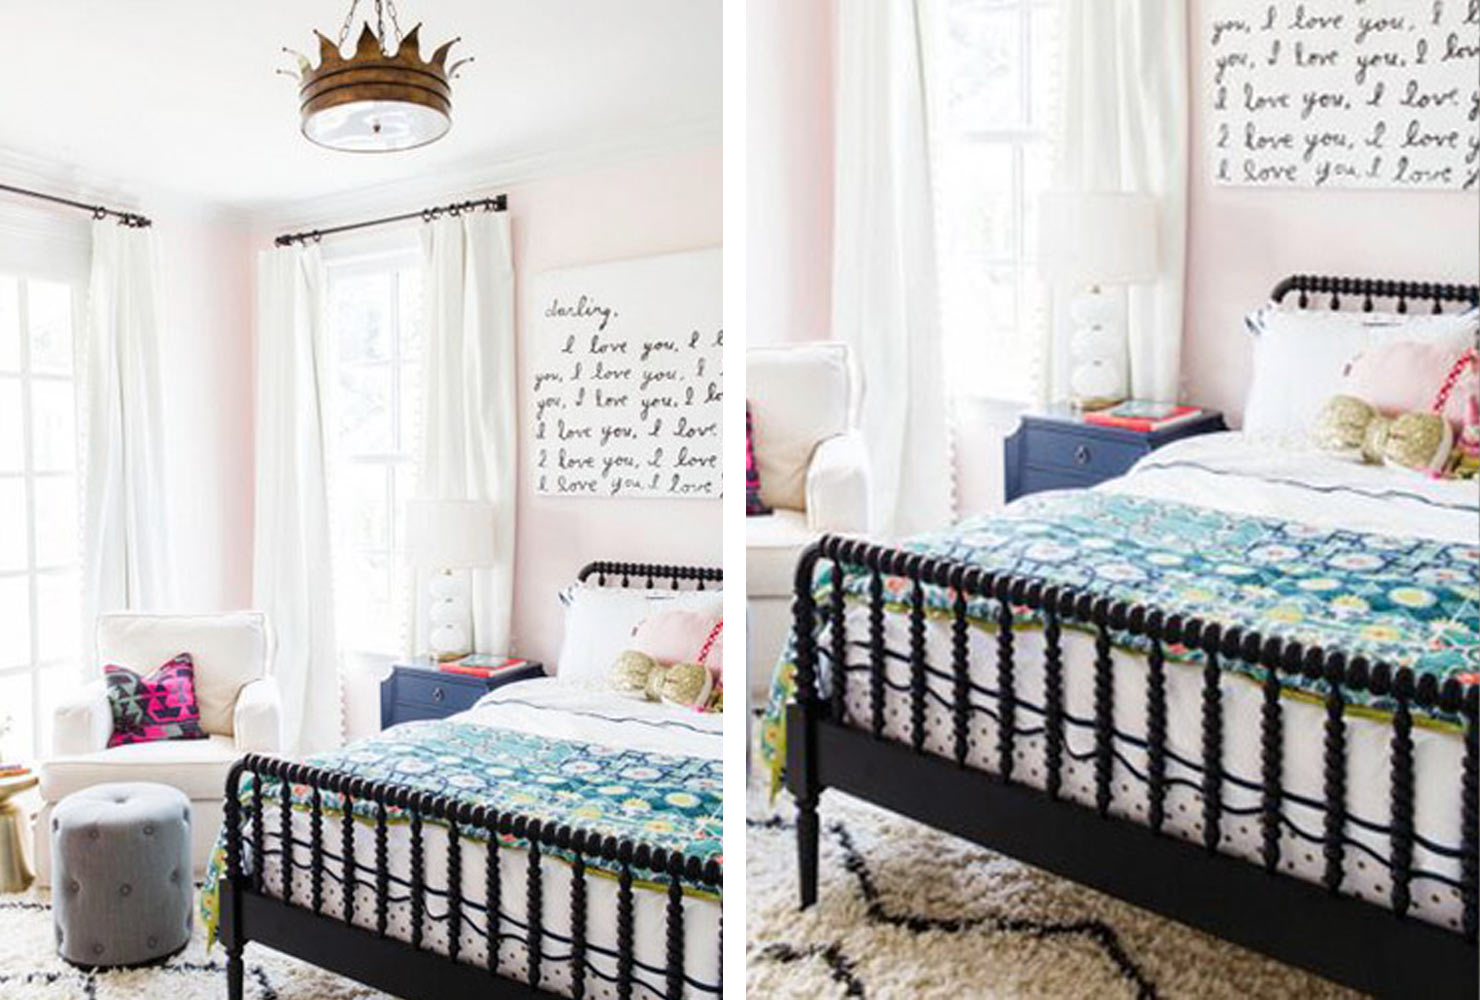 Little girls bedroom decor with colorful accents.